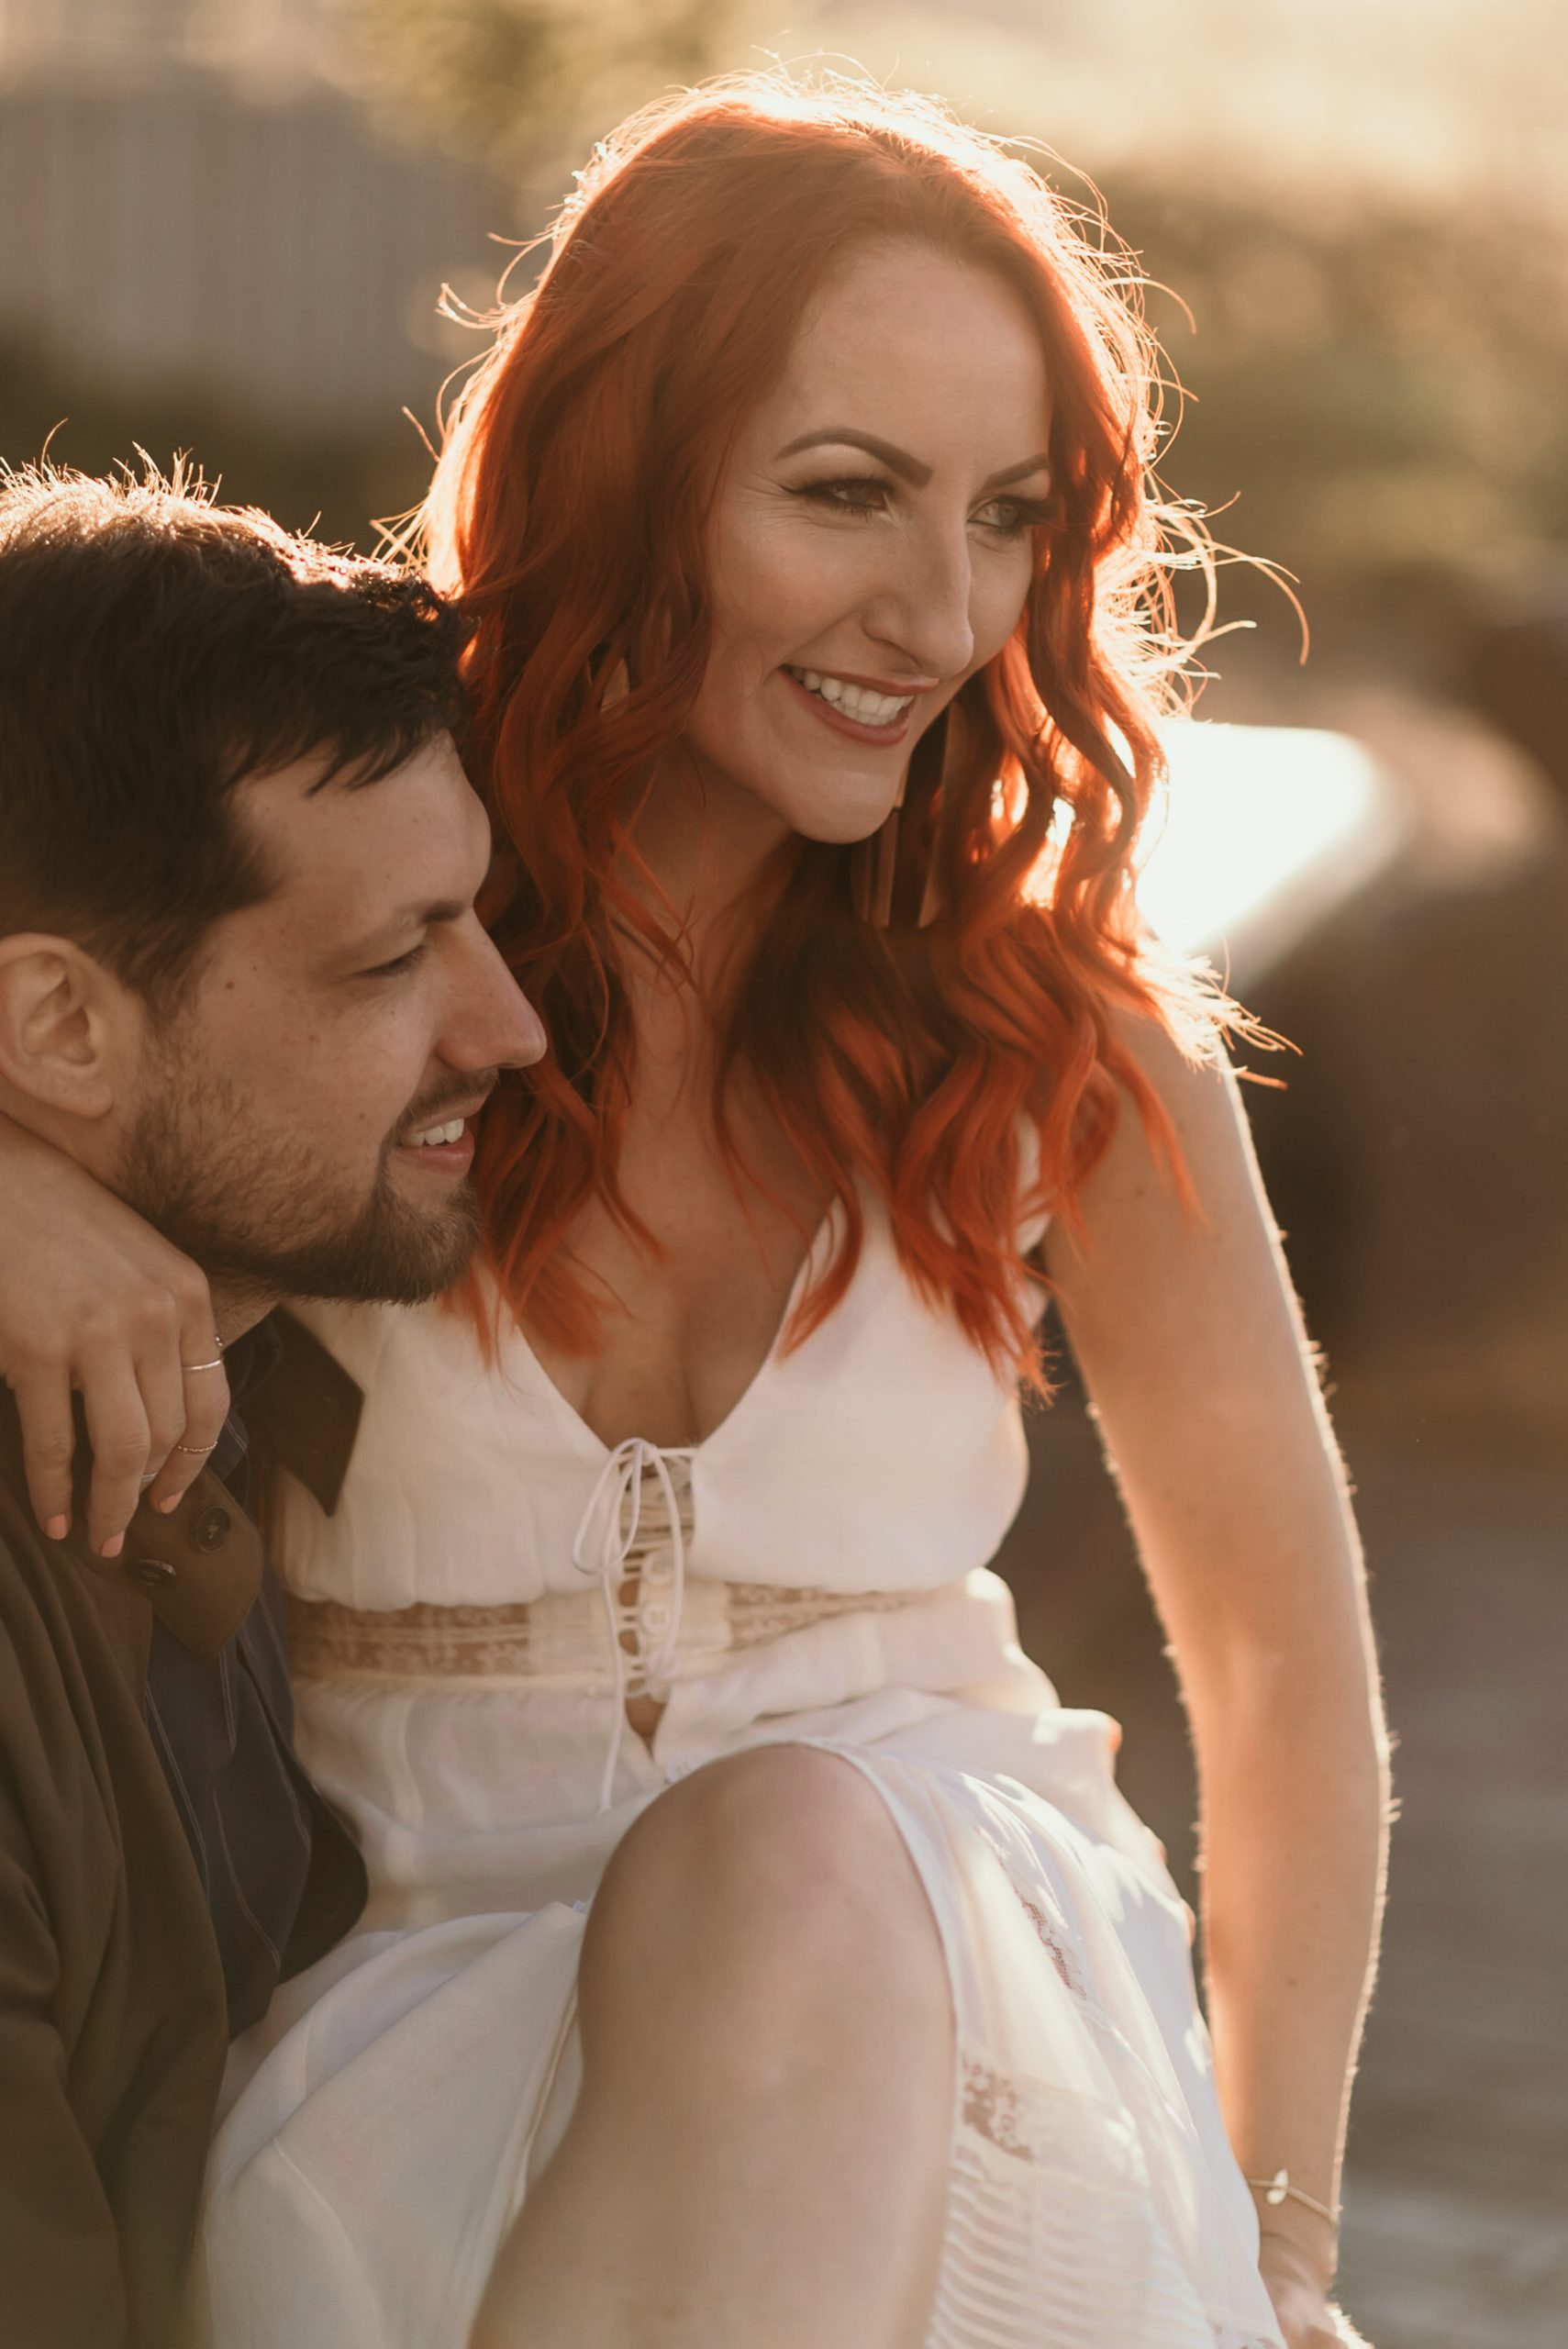 golden-hour-moody-engagement-photos-williamsburg-brooklyn-suessmoments-nyc-photographer